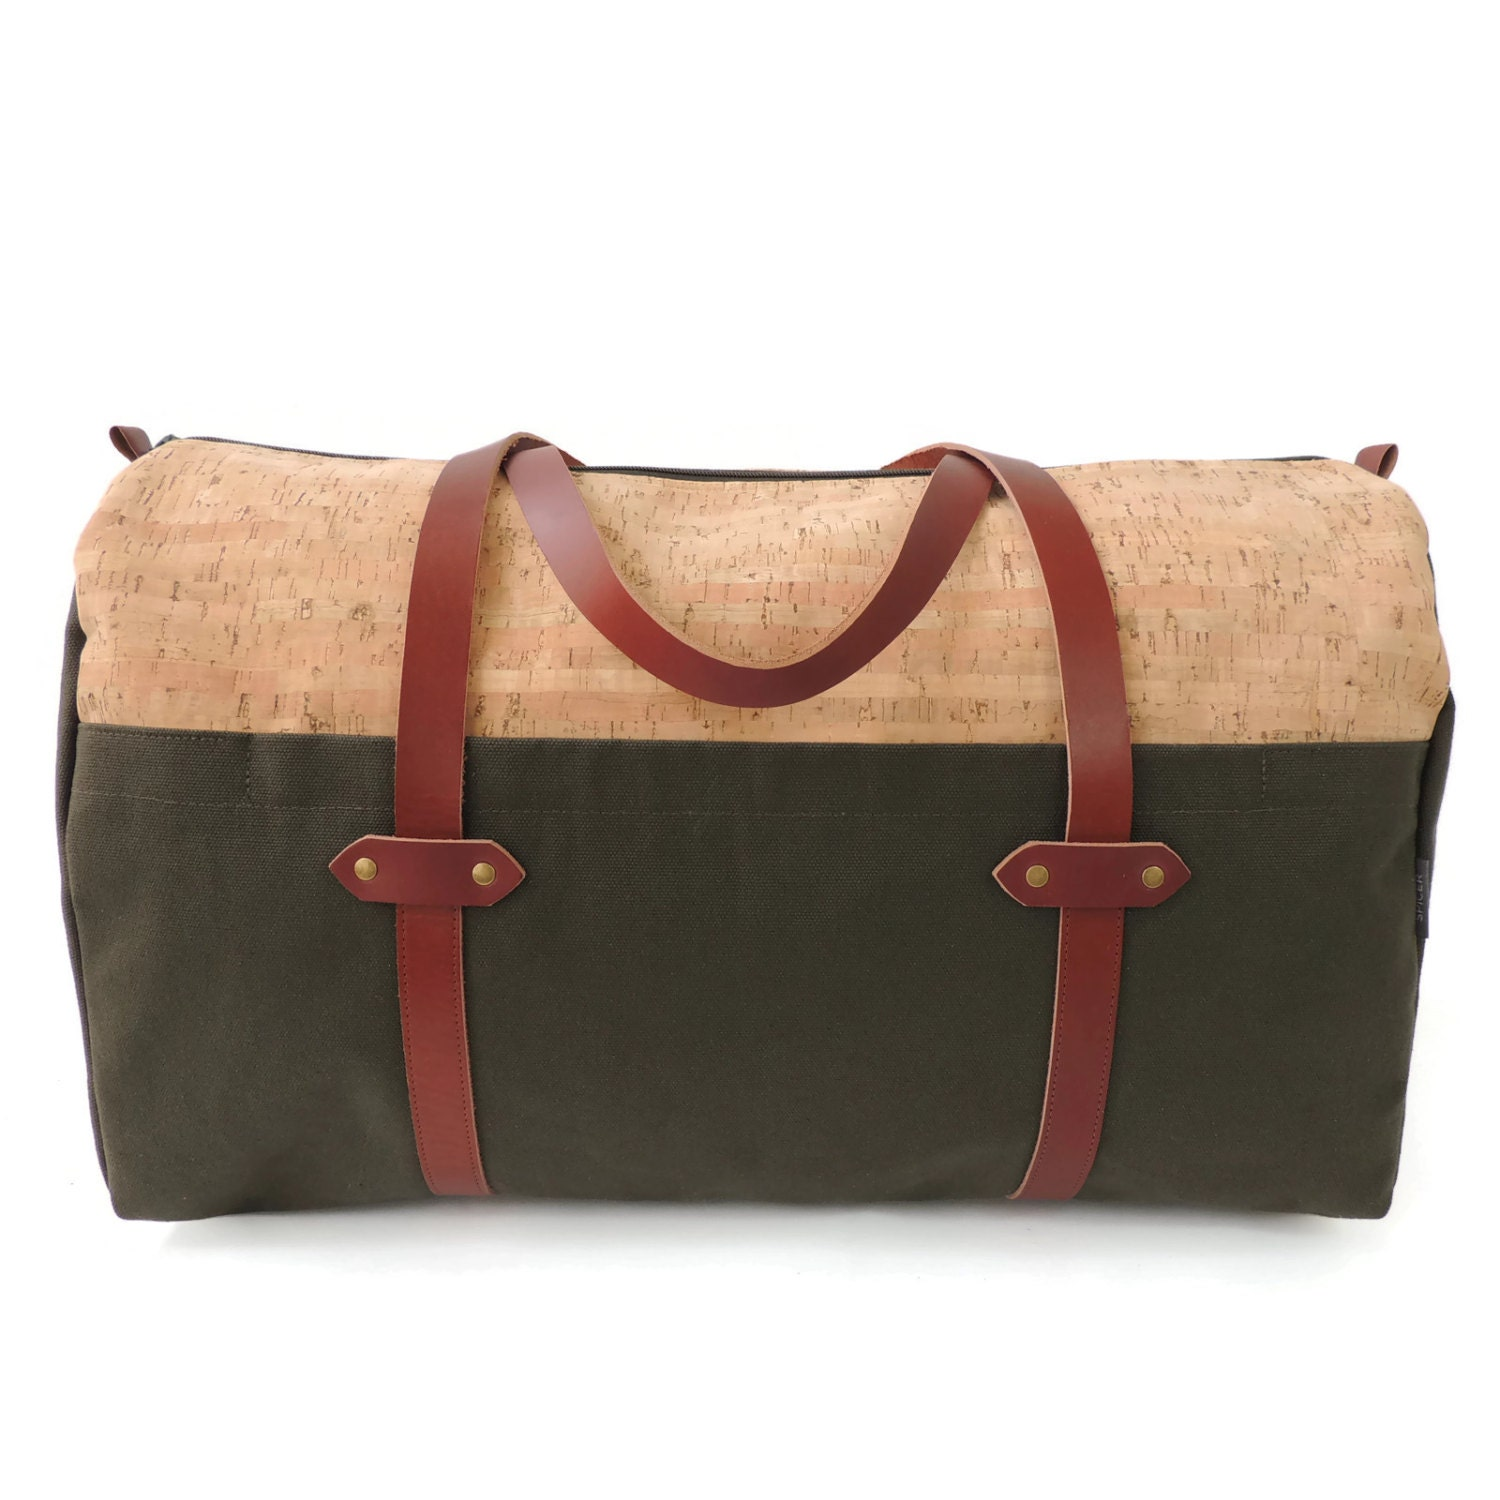 Weekender Bag in Cork and Canvas with Leather Strap    Olive Green Duffle    Unisex Travel Bag    Made in USA by Spicer Bags